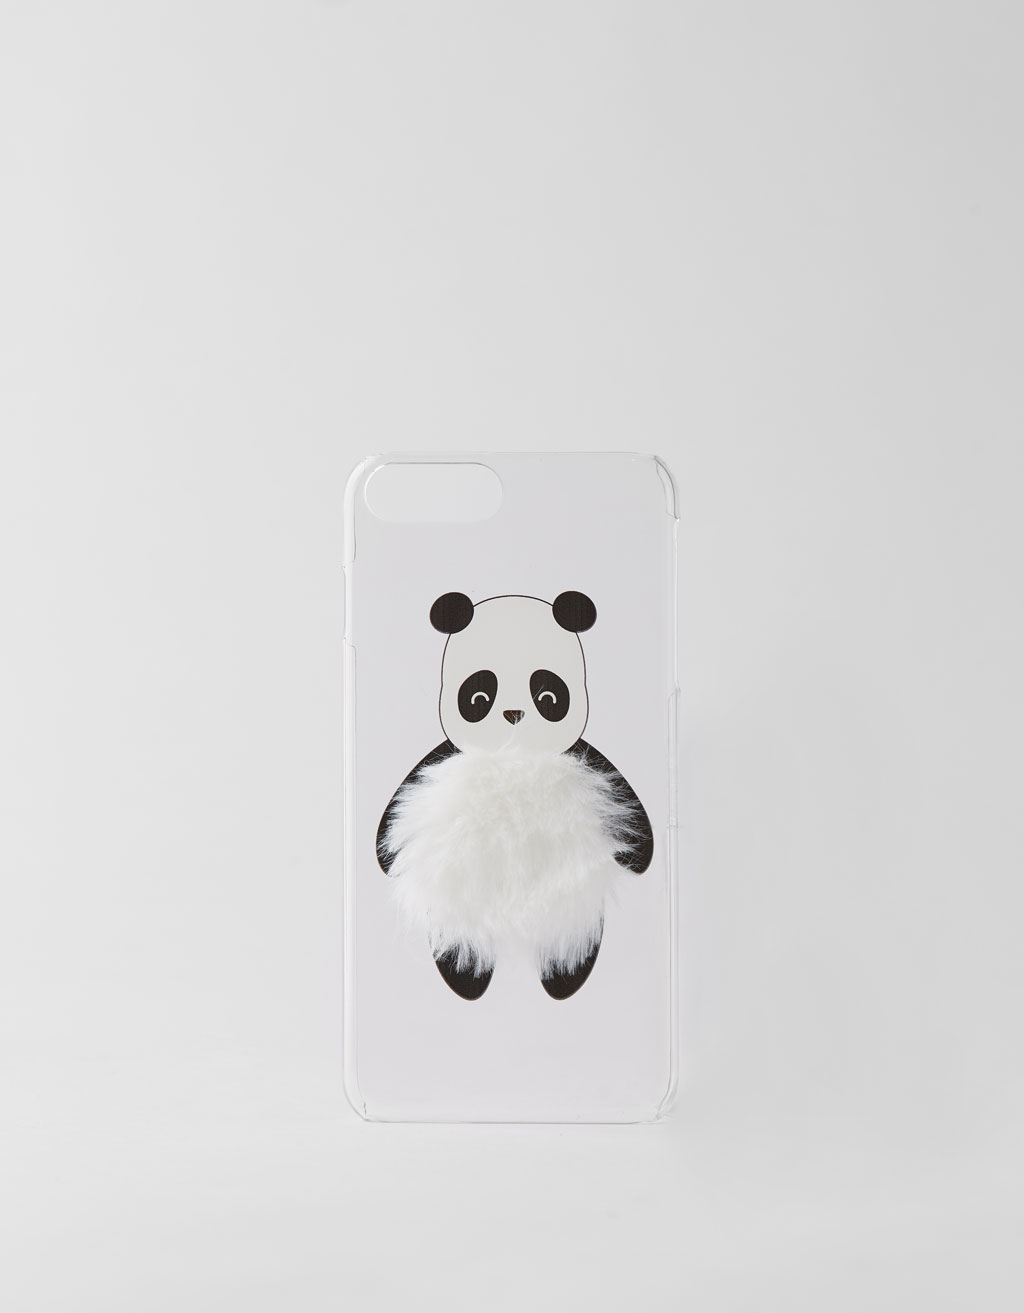 Mobilskal Panda iPhone 6 plus / 7 plus / 8 plus